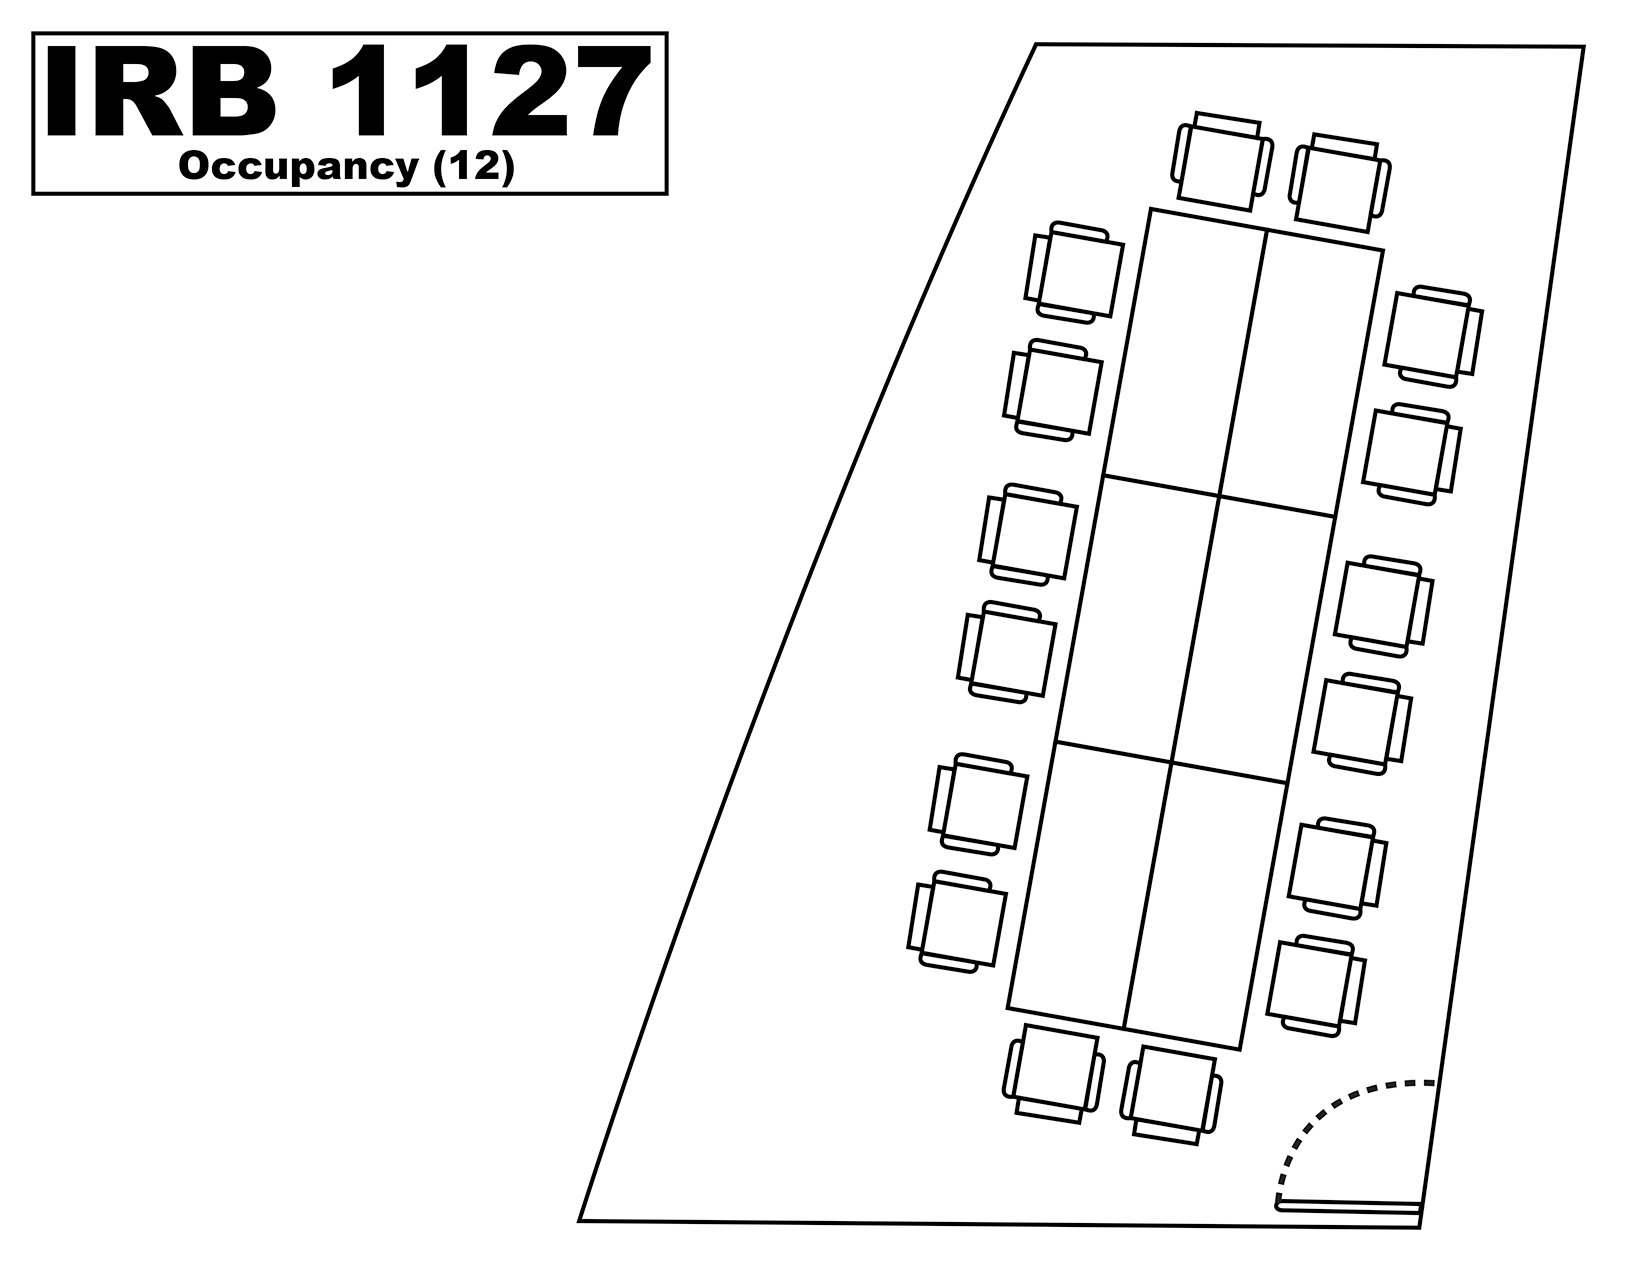 IRB1127 floorplan